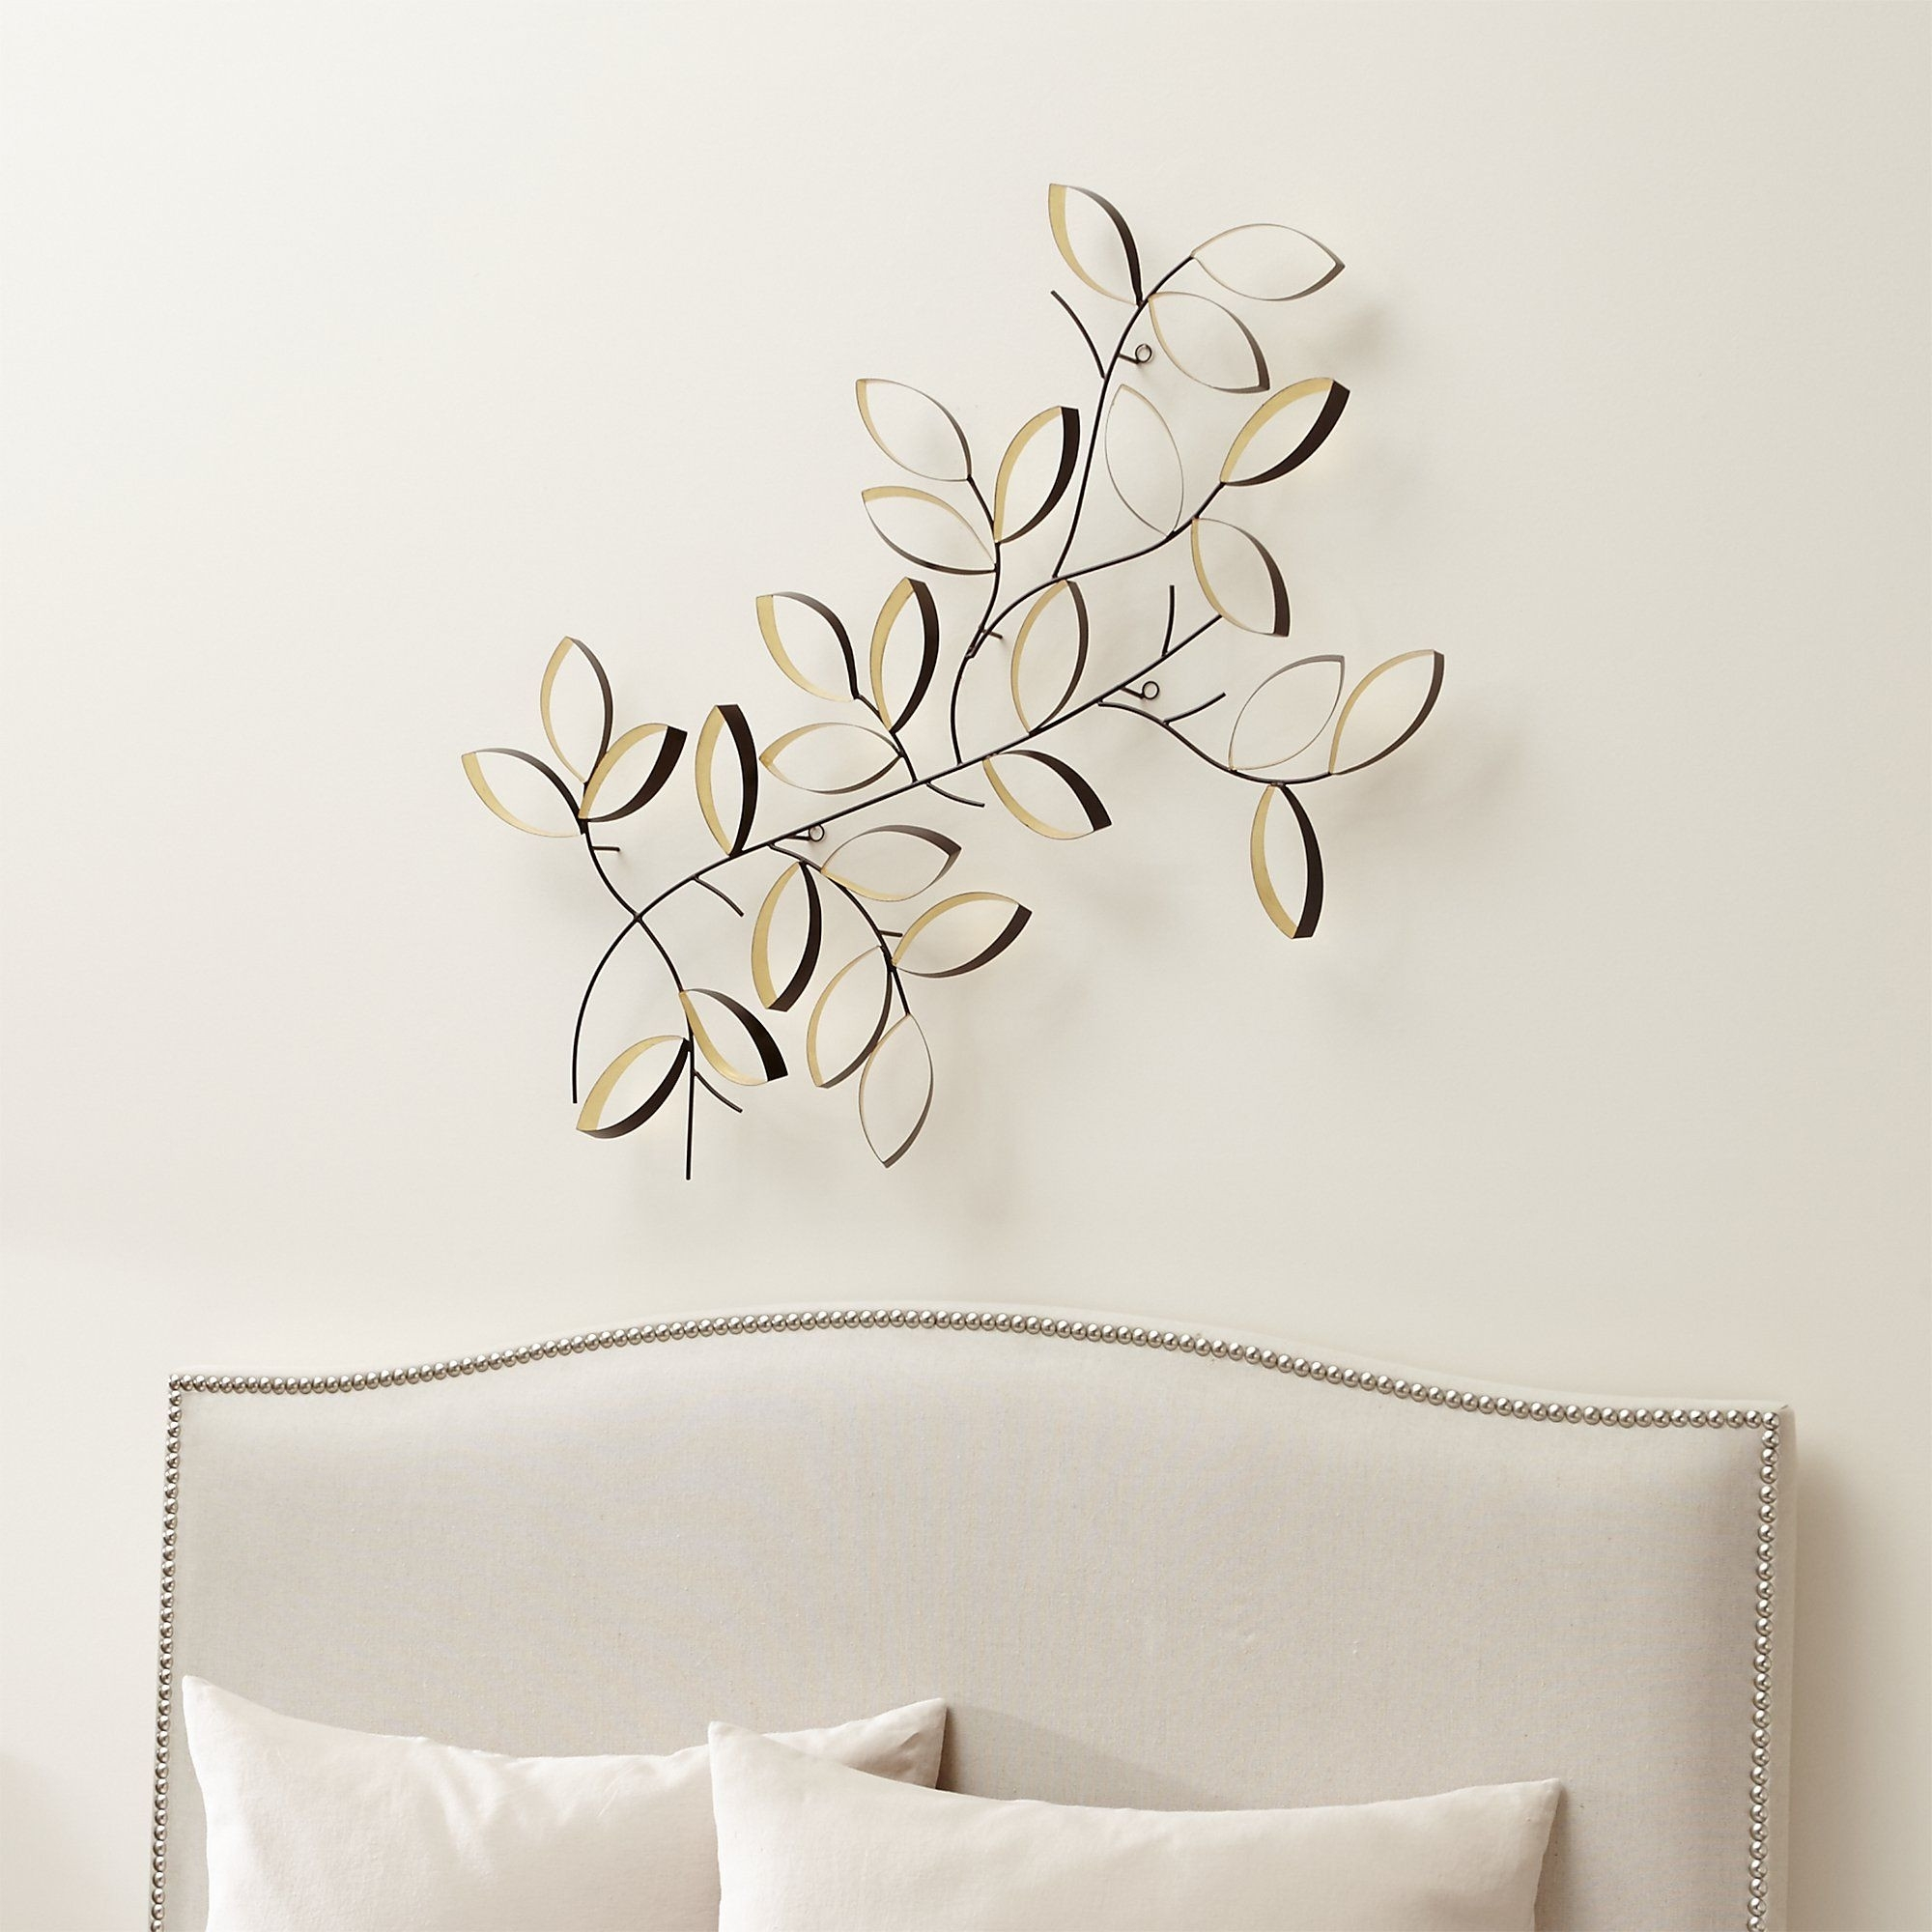 Crate And Barrel Decorative Pillows Best Of Golden Leaves Wall Art in Crate And Barrel Wall Art (Image 9 of 20)